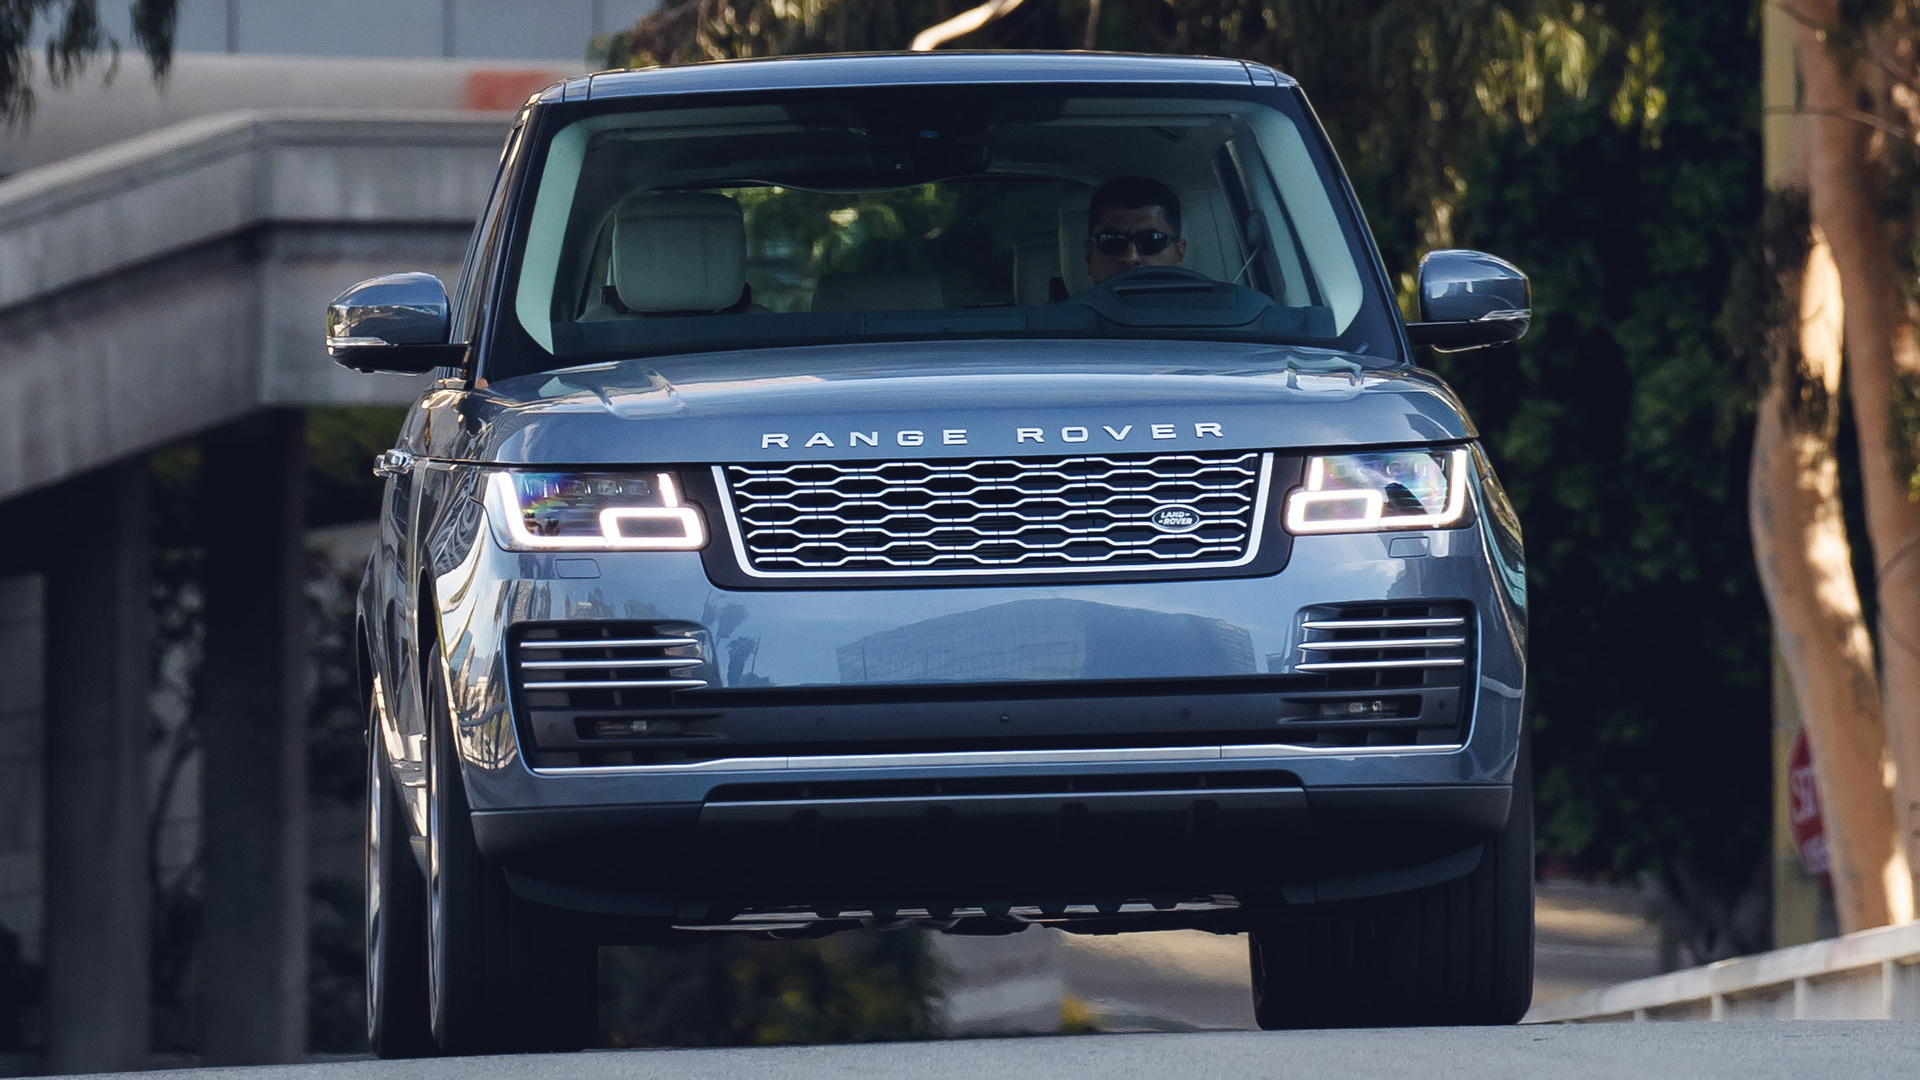 2018 Range Rover Plug-in Hybrid Autobiography - Wallpapers ...